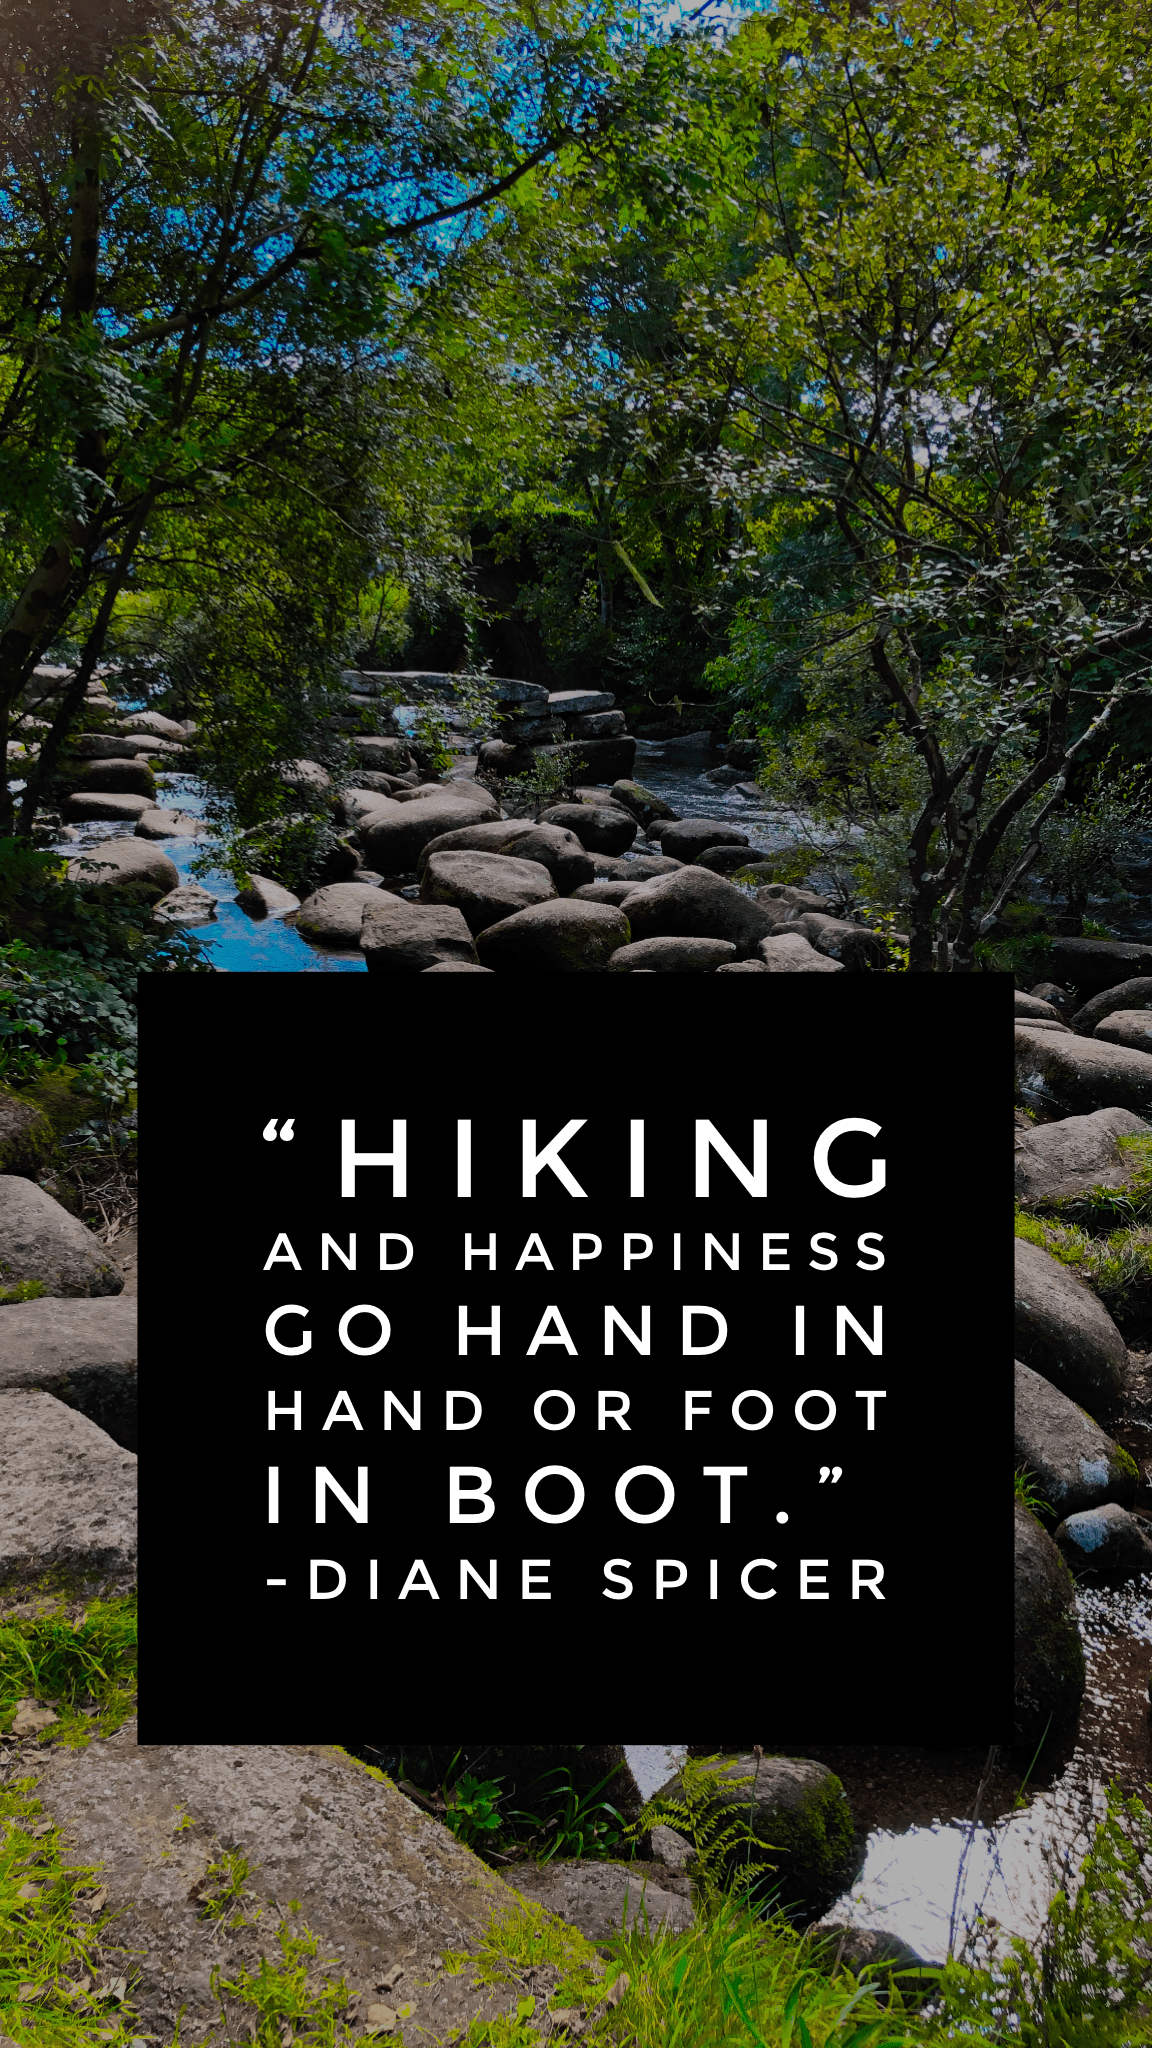 Hiking and happiness go hand in boot hiking caption